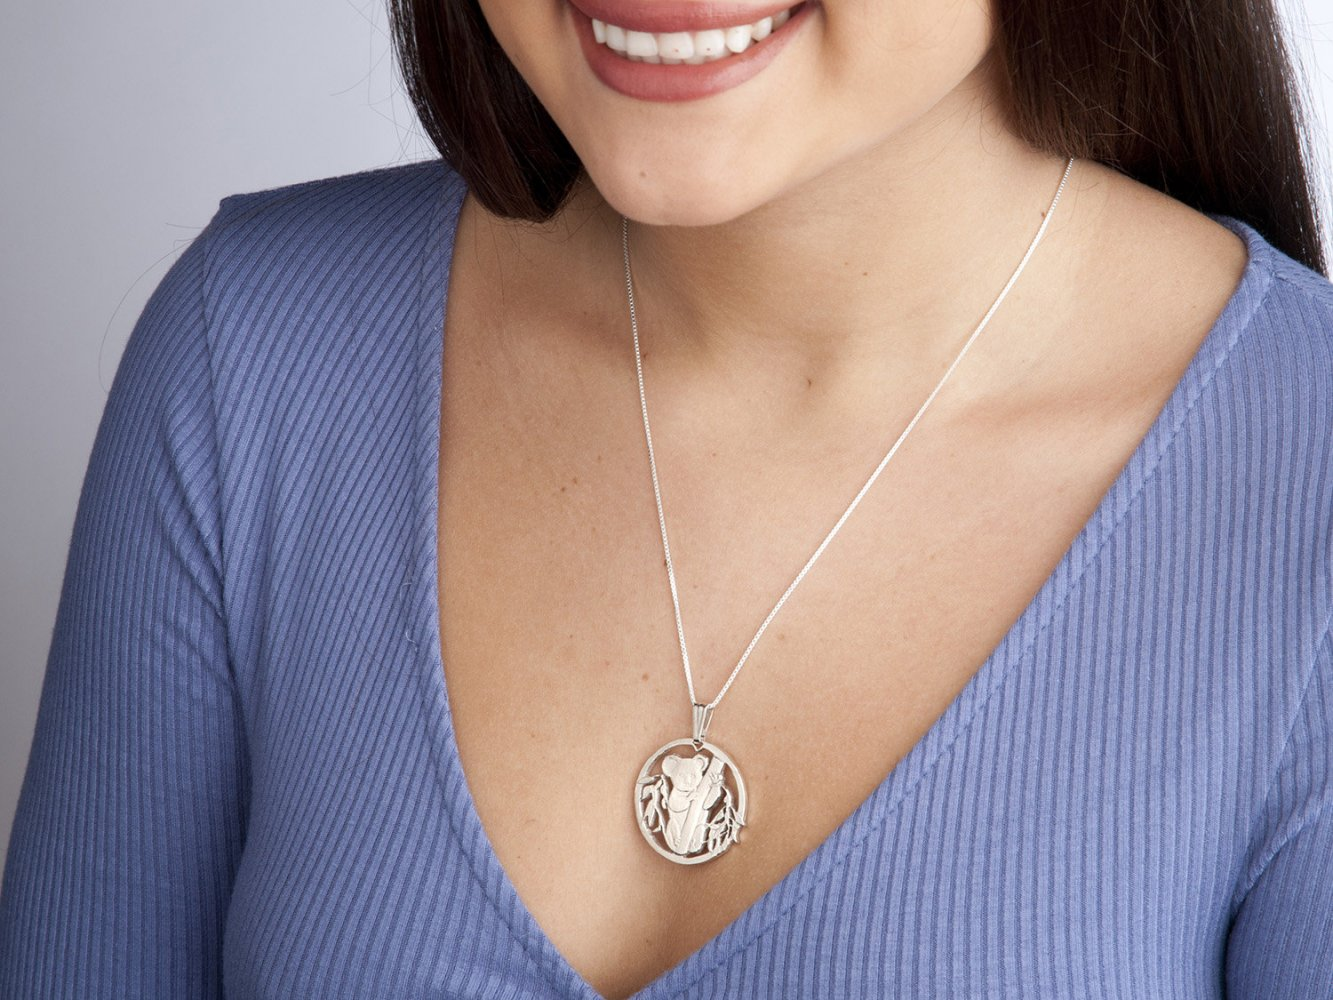 Personalised Necklace Animal Necklace Gold Australian Gift Silver MFY244 Copper Custom Made Koala Small Black Necklace